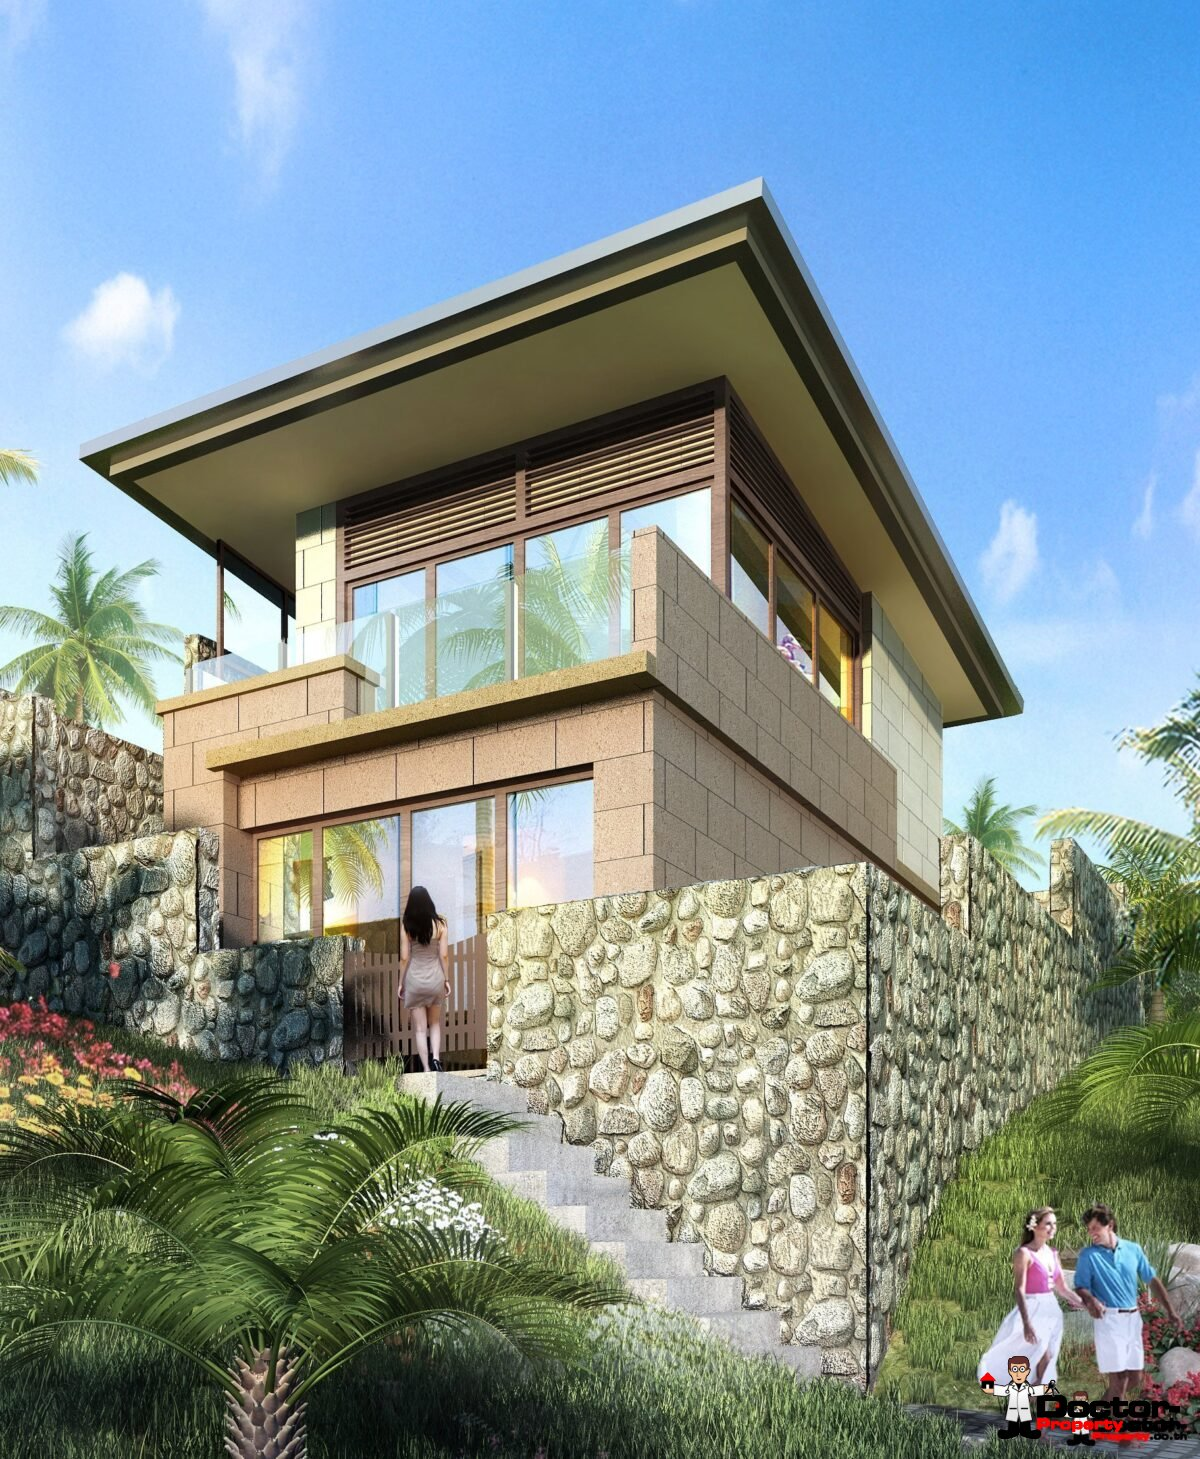 New 1 Bedroom Villa with Seaview - Chaweng Noi, Koh Samui -For Sale